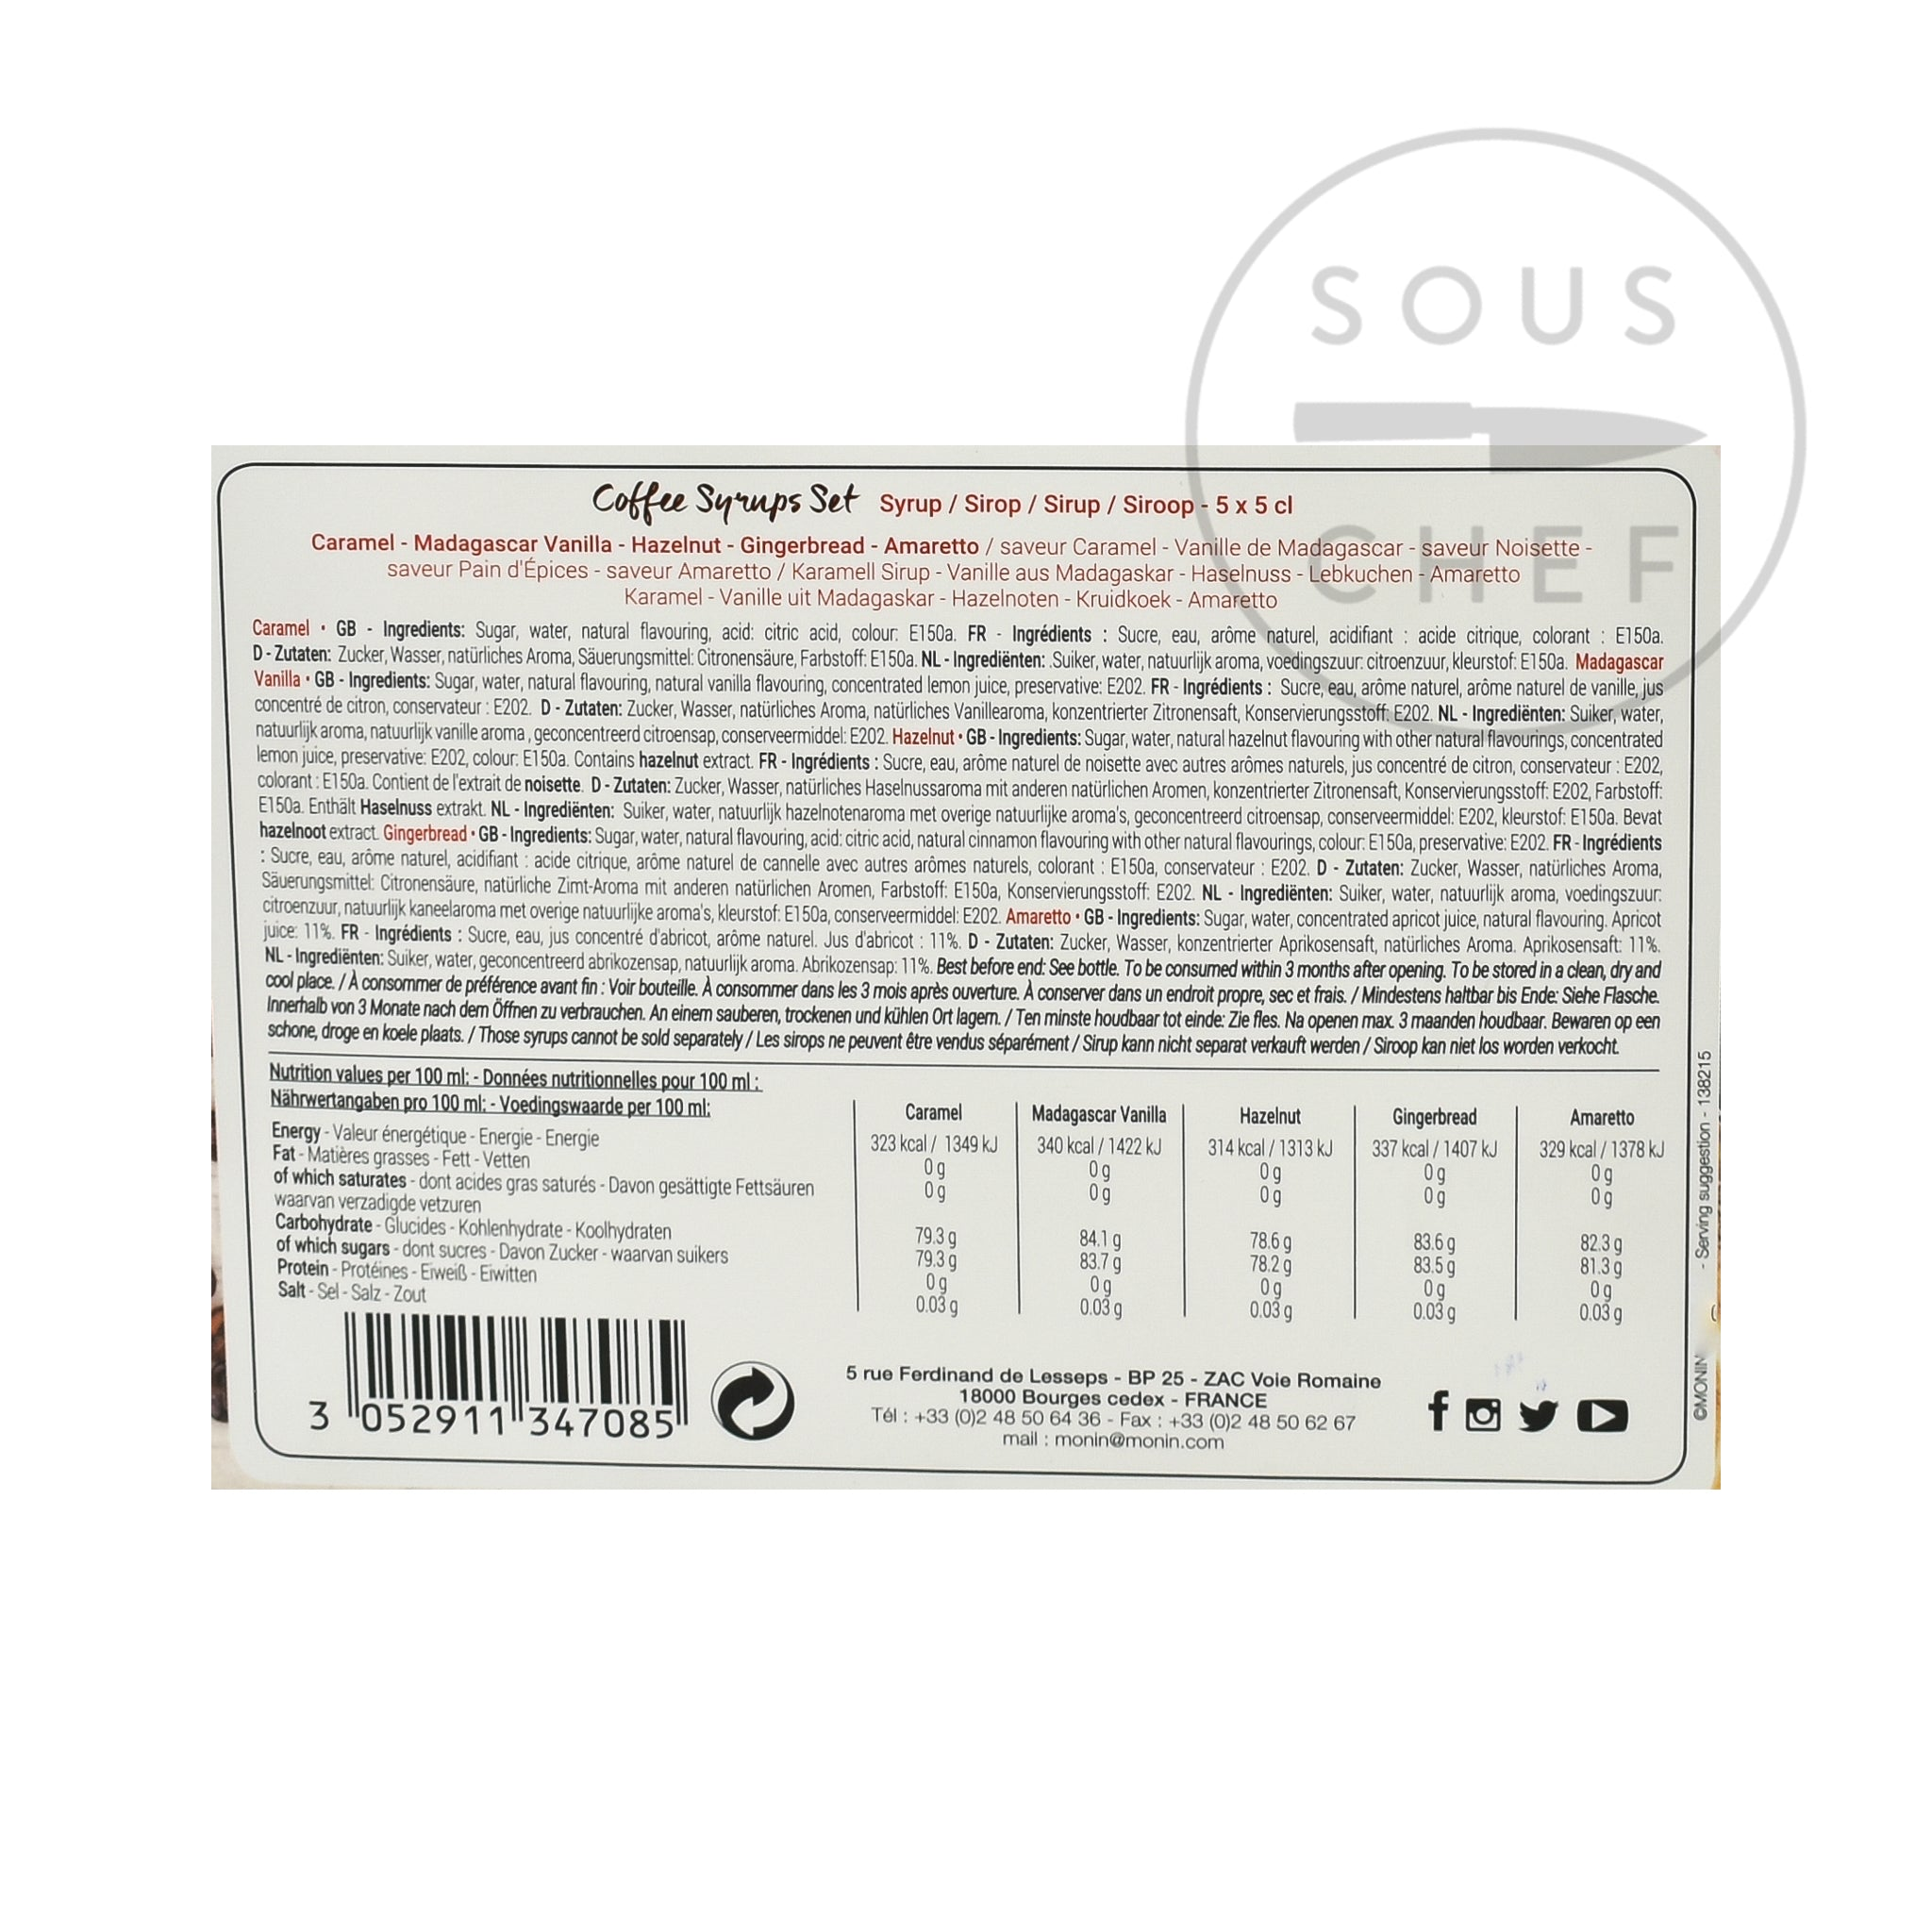 Monin Coffee Syrup Set 5 x 50ml Ingredients Drinks Syrups & Concentrates French Food Ingredients Nutritional Information